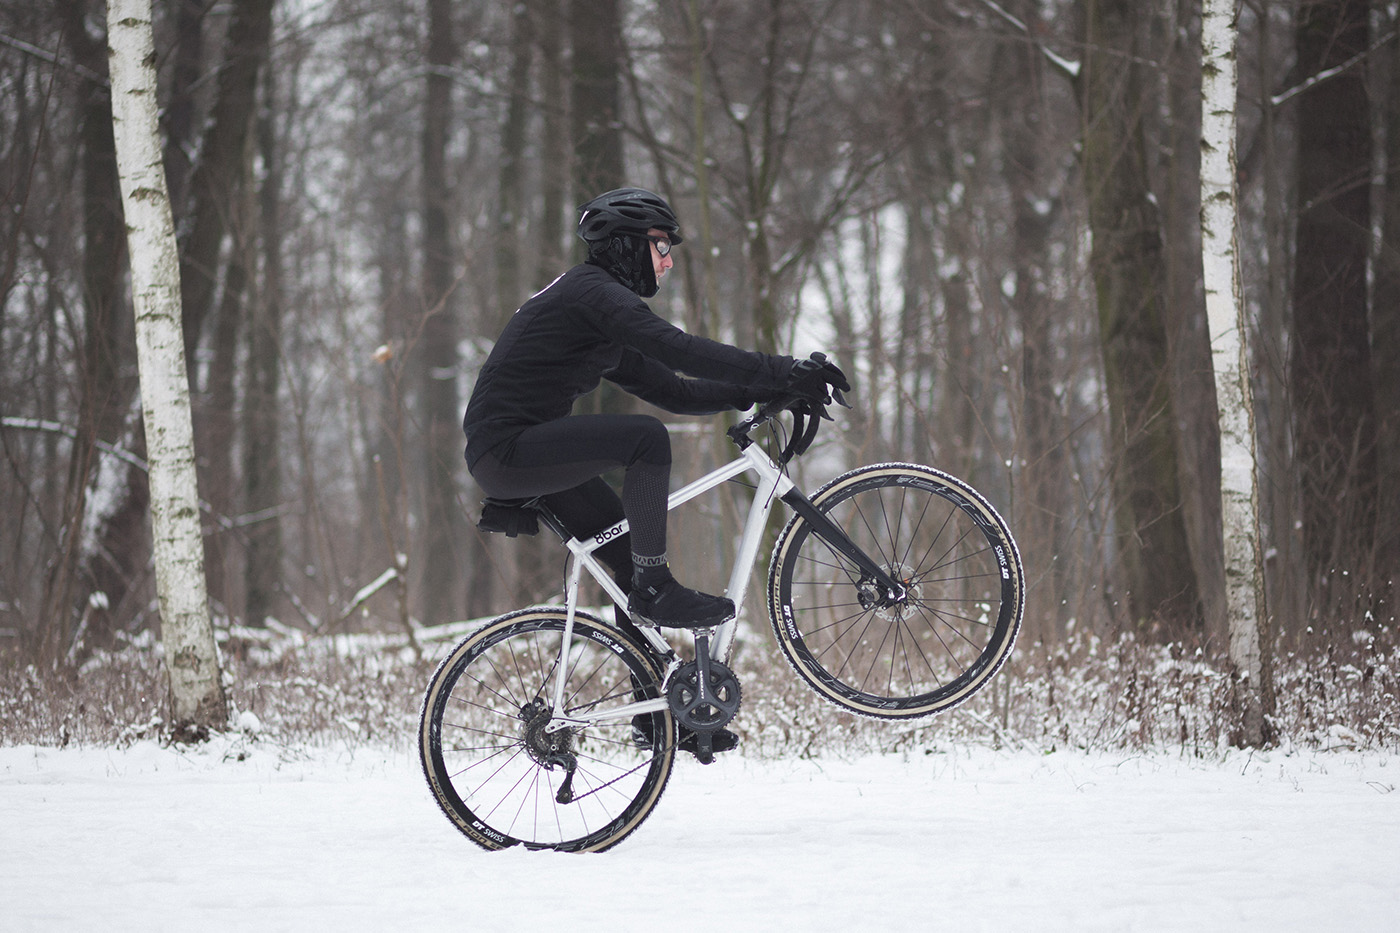 8bar mitte gravel adventure bike 0037 s - Having fun in the snow